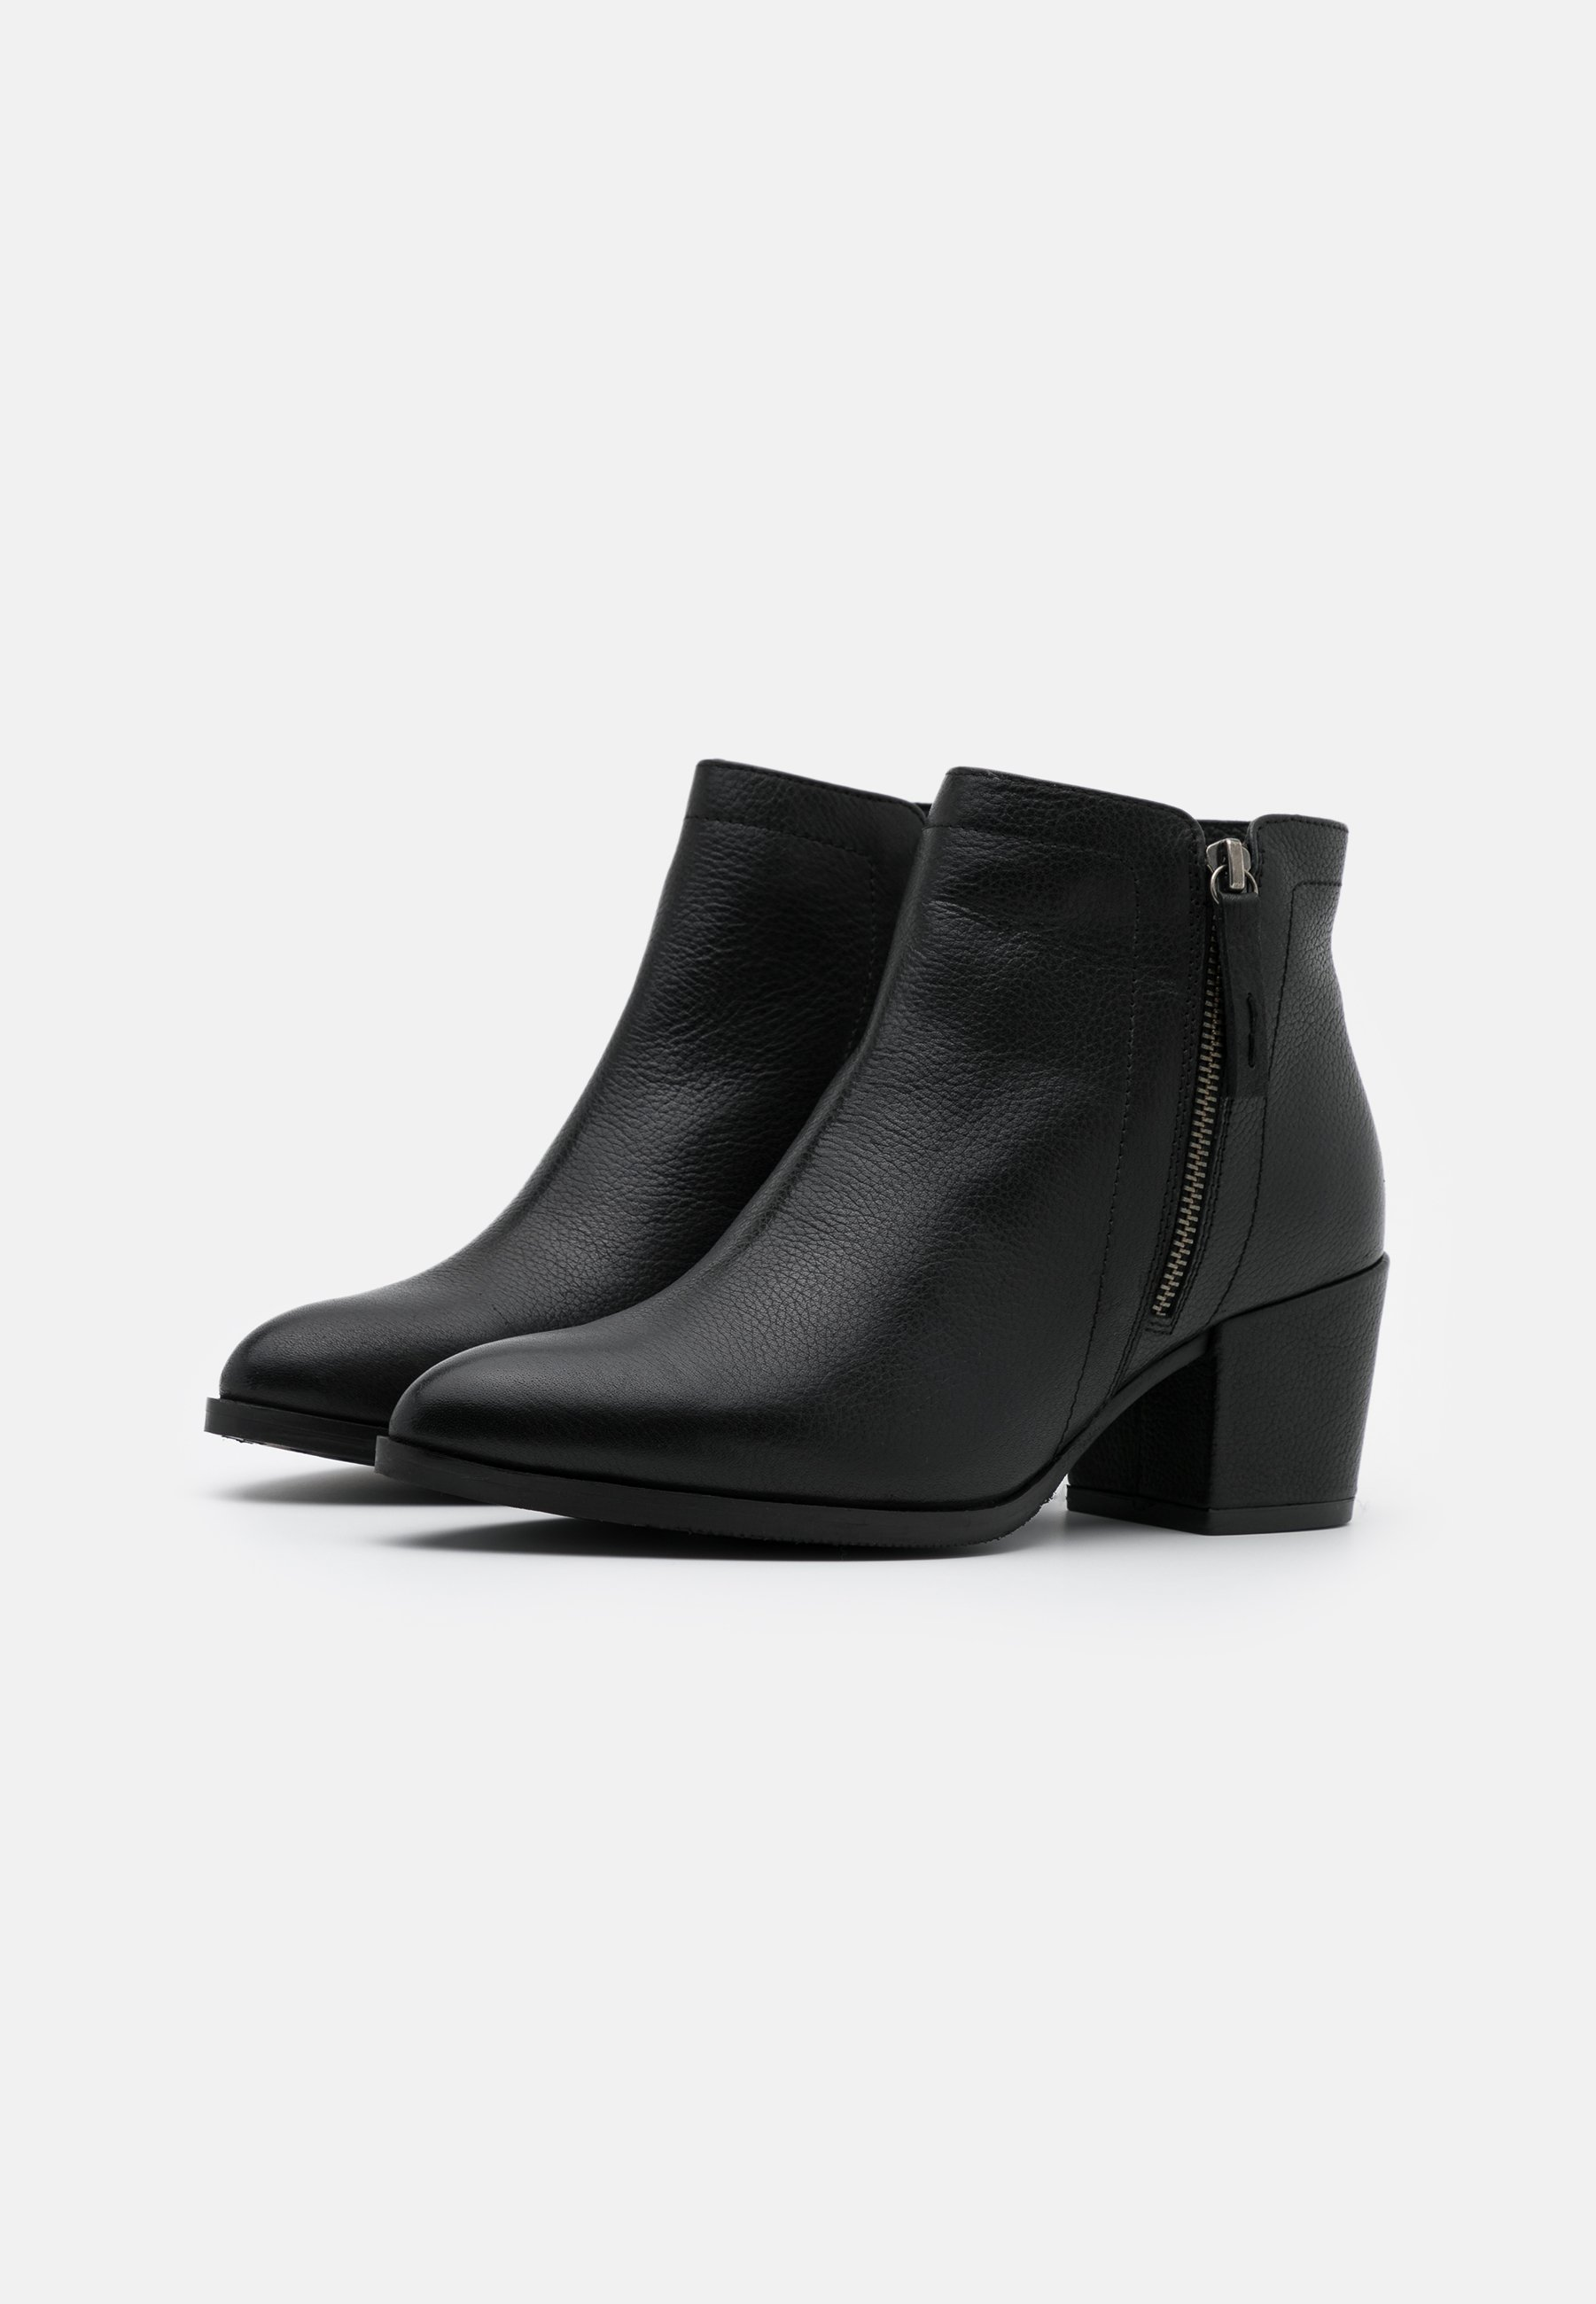 Anna Field LEATHER Ankle Boot black/schwarz